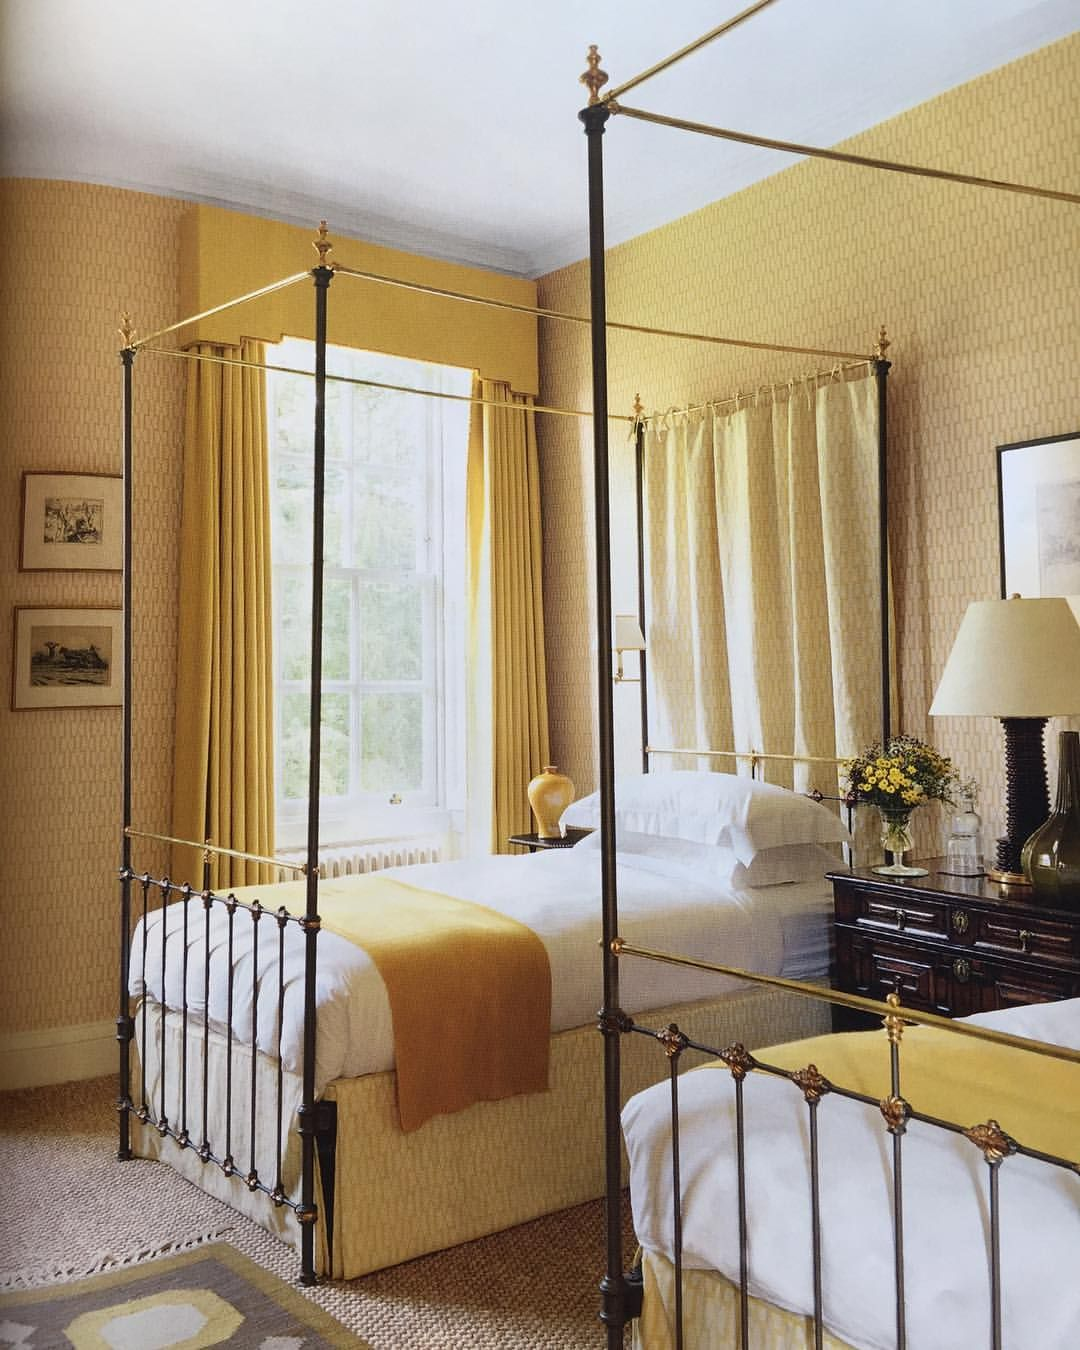 how to make a north facing guest room in deepest norfolk full of sunshine wallpaper and beds in warm yellow tones - Yellow Canopy Interior